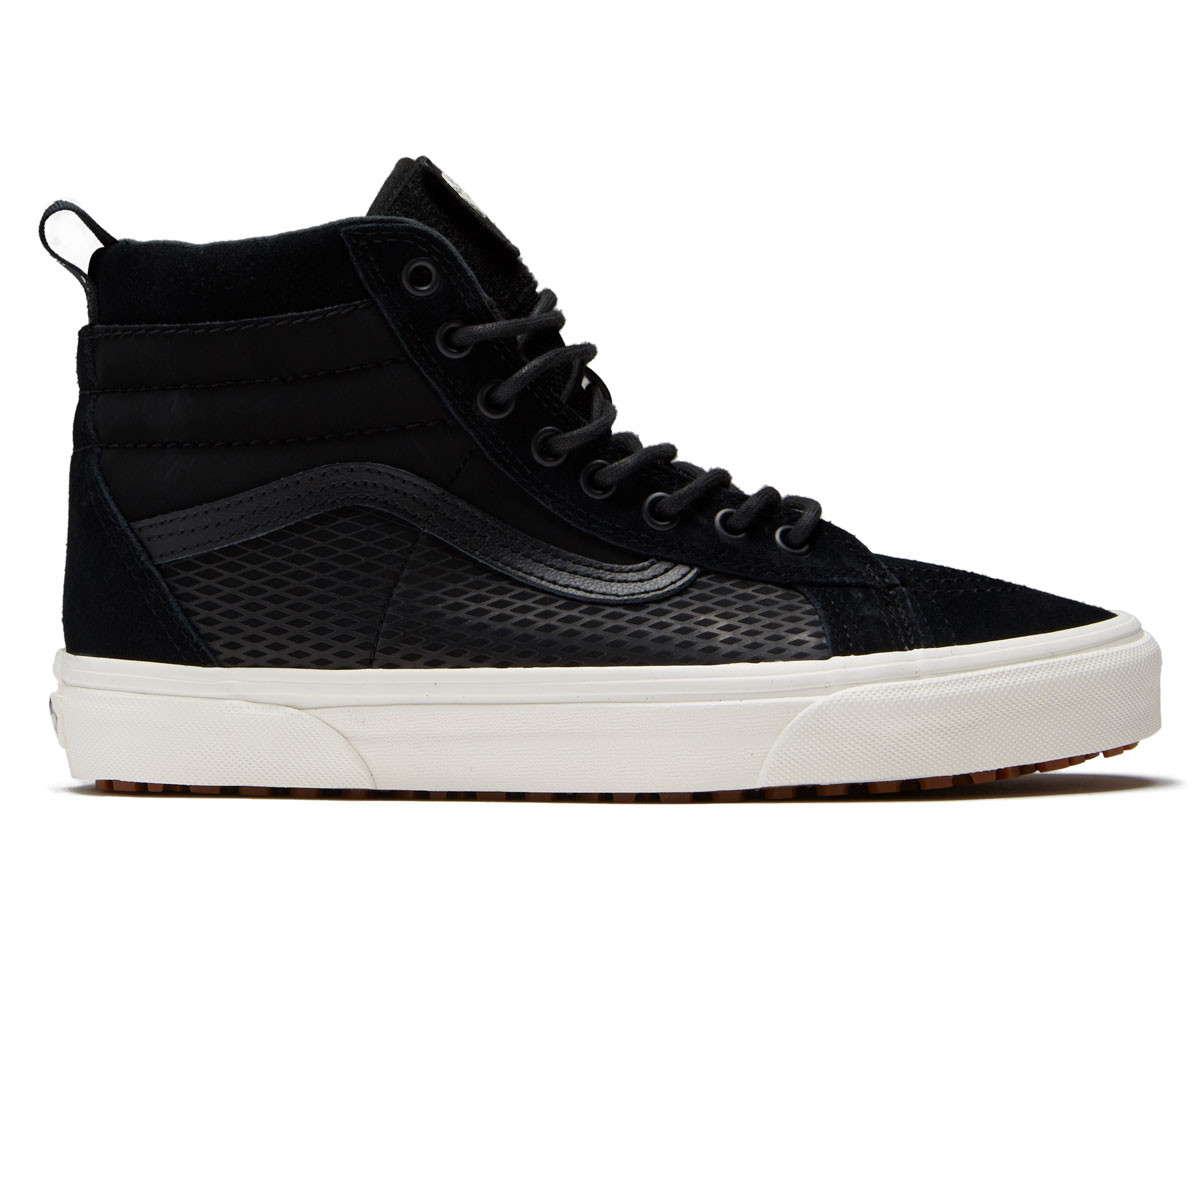 Vans SK8-Hi 46 MTE DX Shoes - Tact Black - 8.0 654648b07